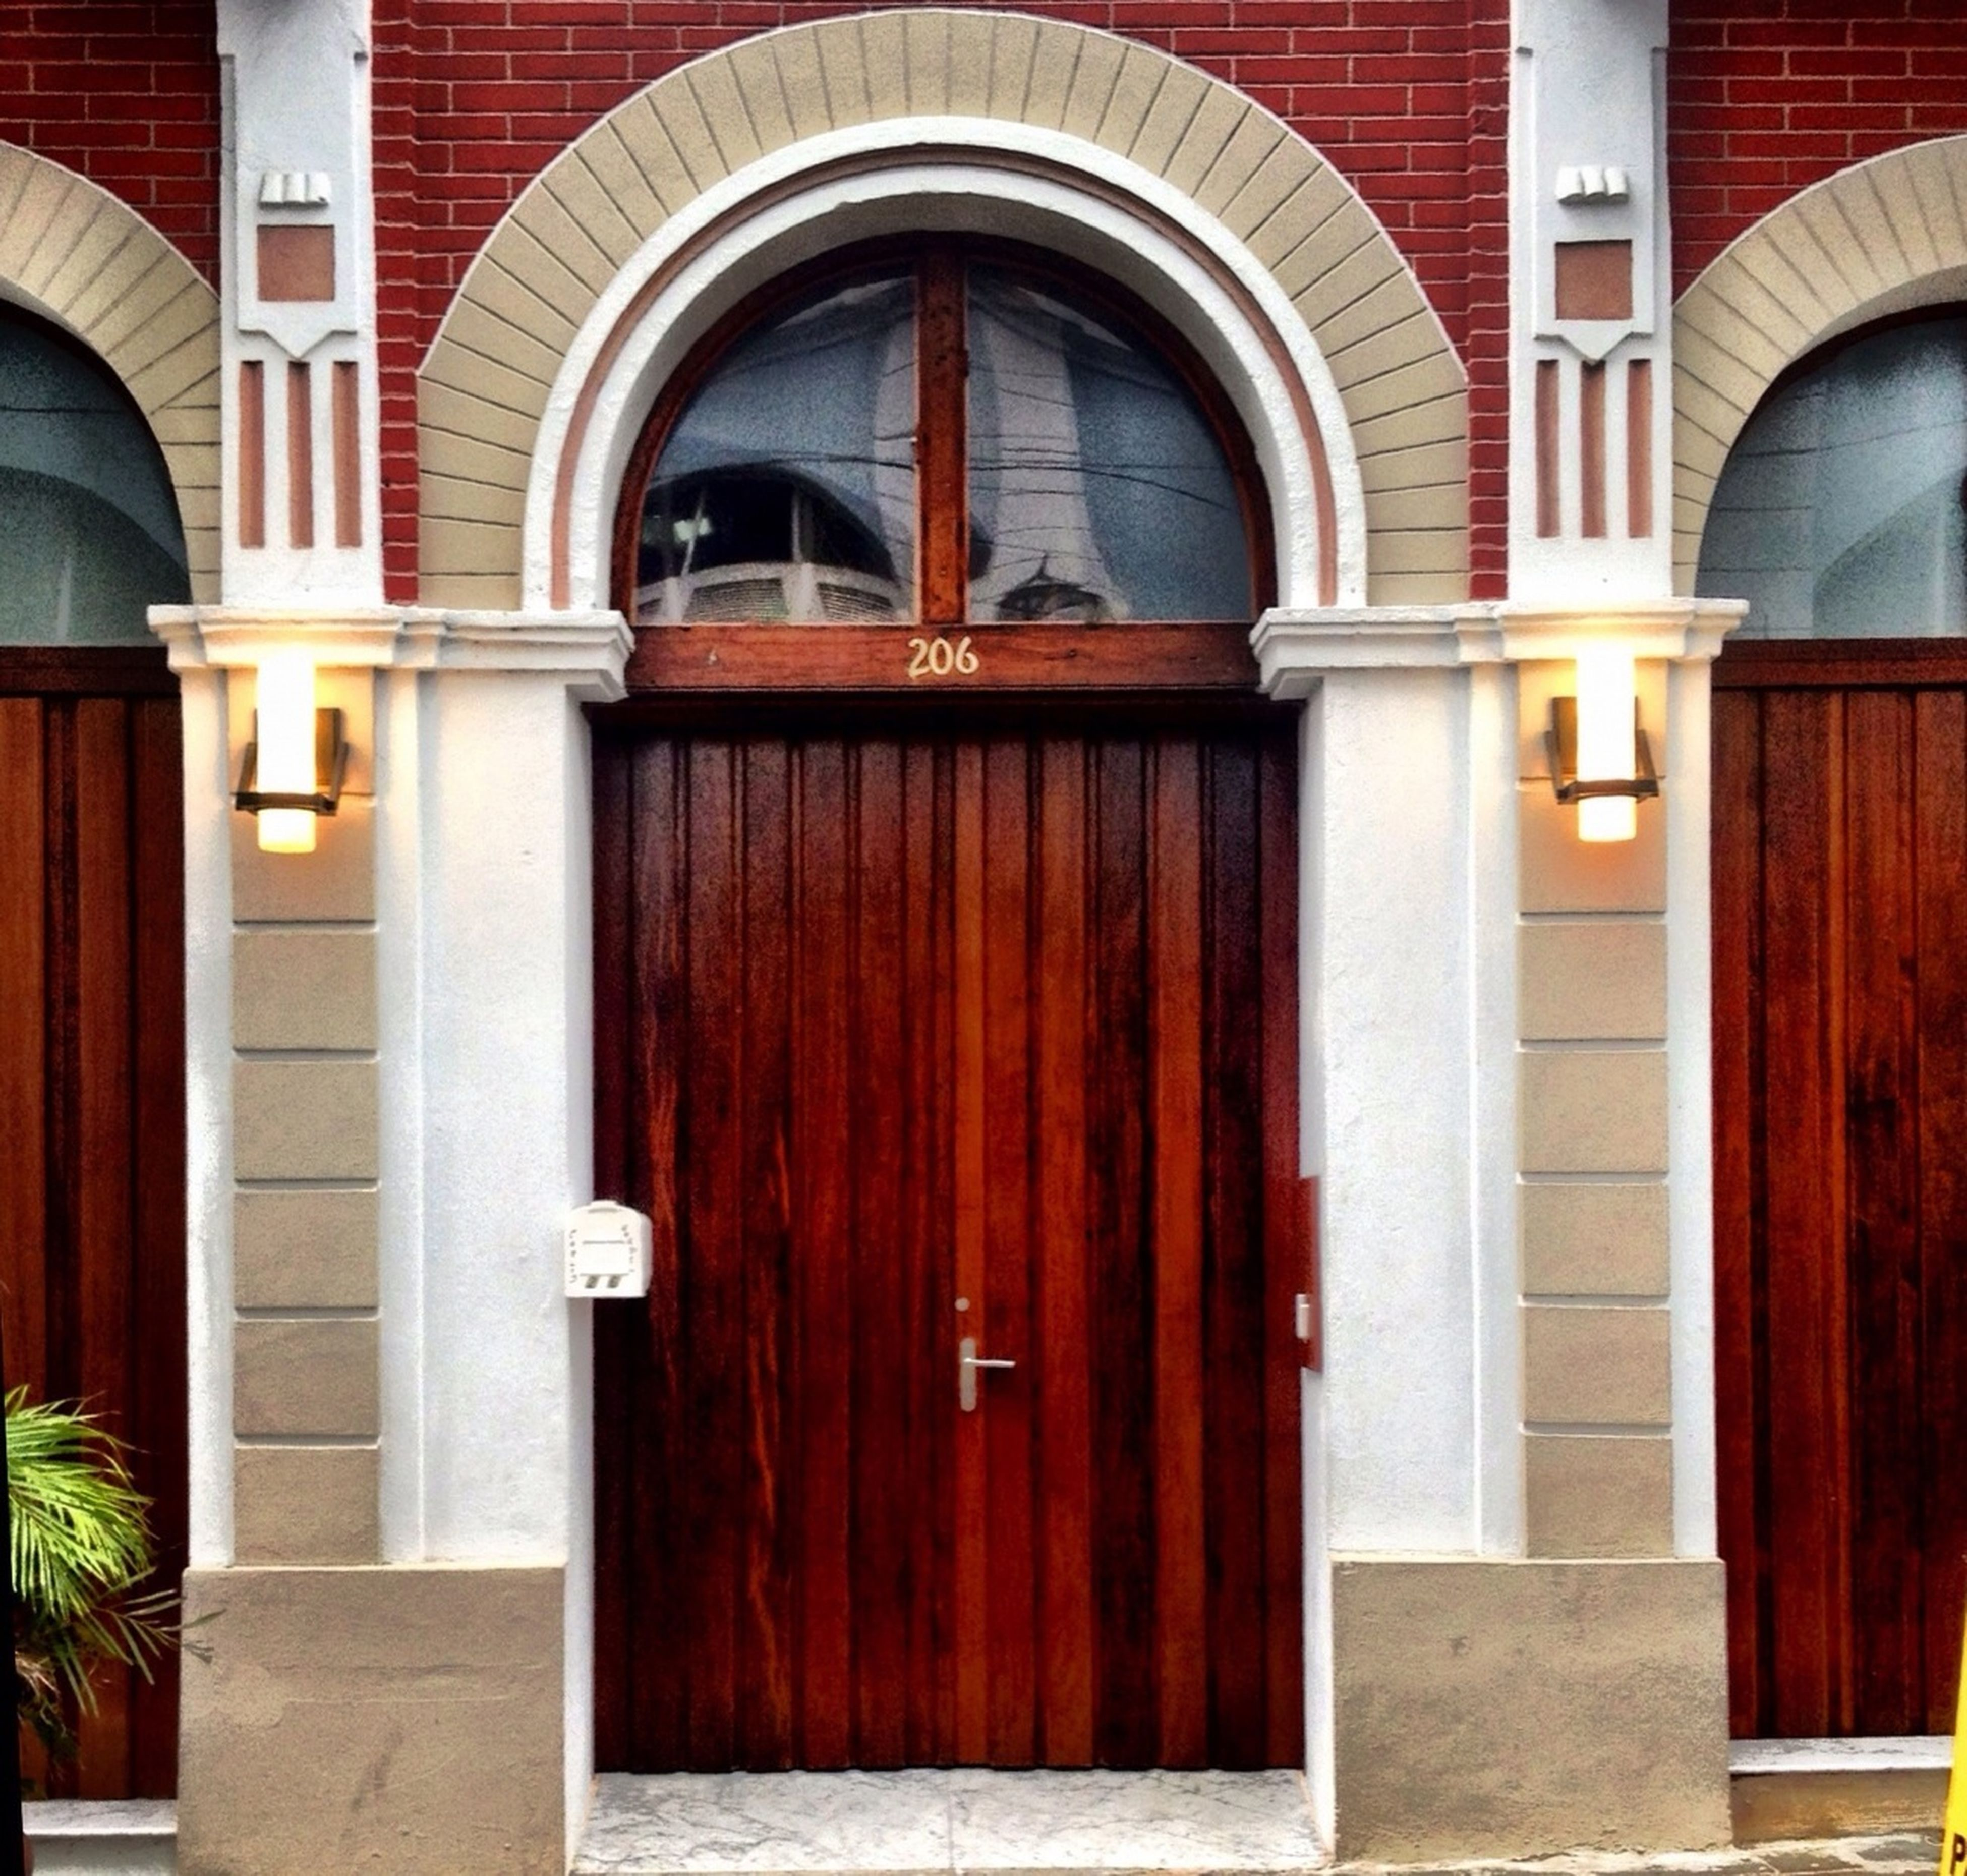 architecture, arch, built structure, building exterior, door, entrance, closed, window, house, building, facade, red, architectural column, gate, residential structure, day, outdoors, protection, safety, city